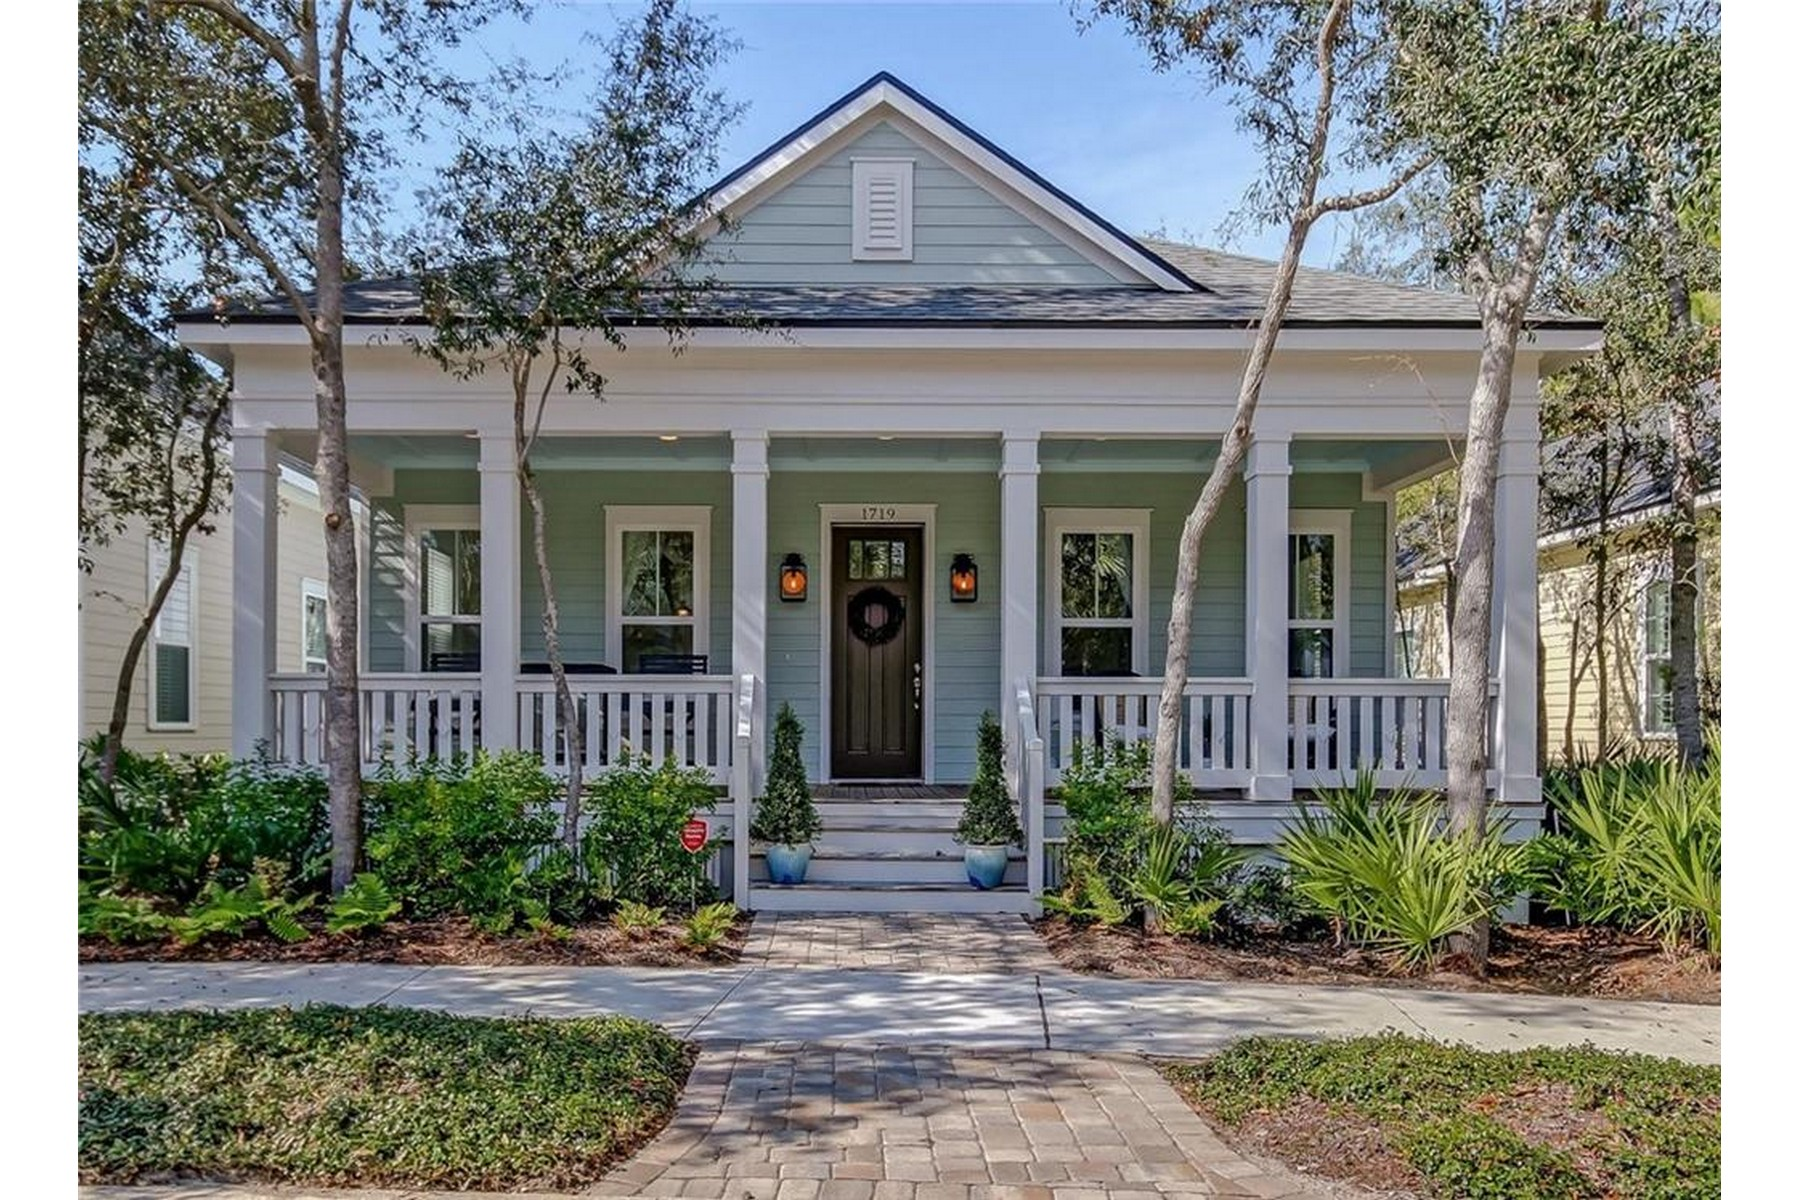 Single Family Home for Sale at Amelia Park Cottage With All The Charm 1719 S. 15th Street Fernandina Beach, Florida 32034 United States